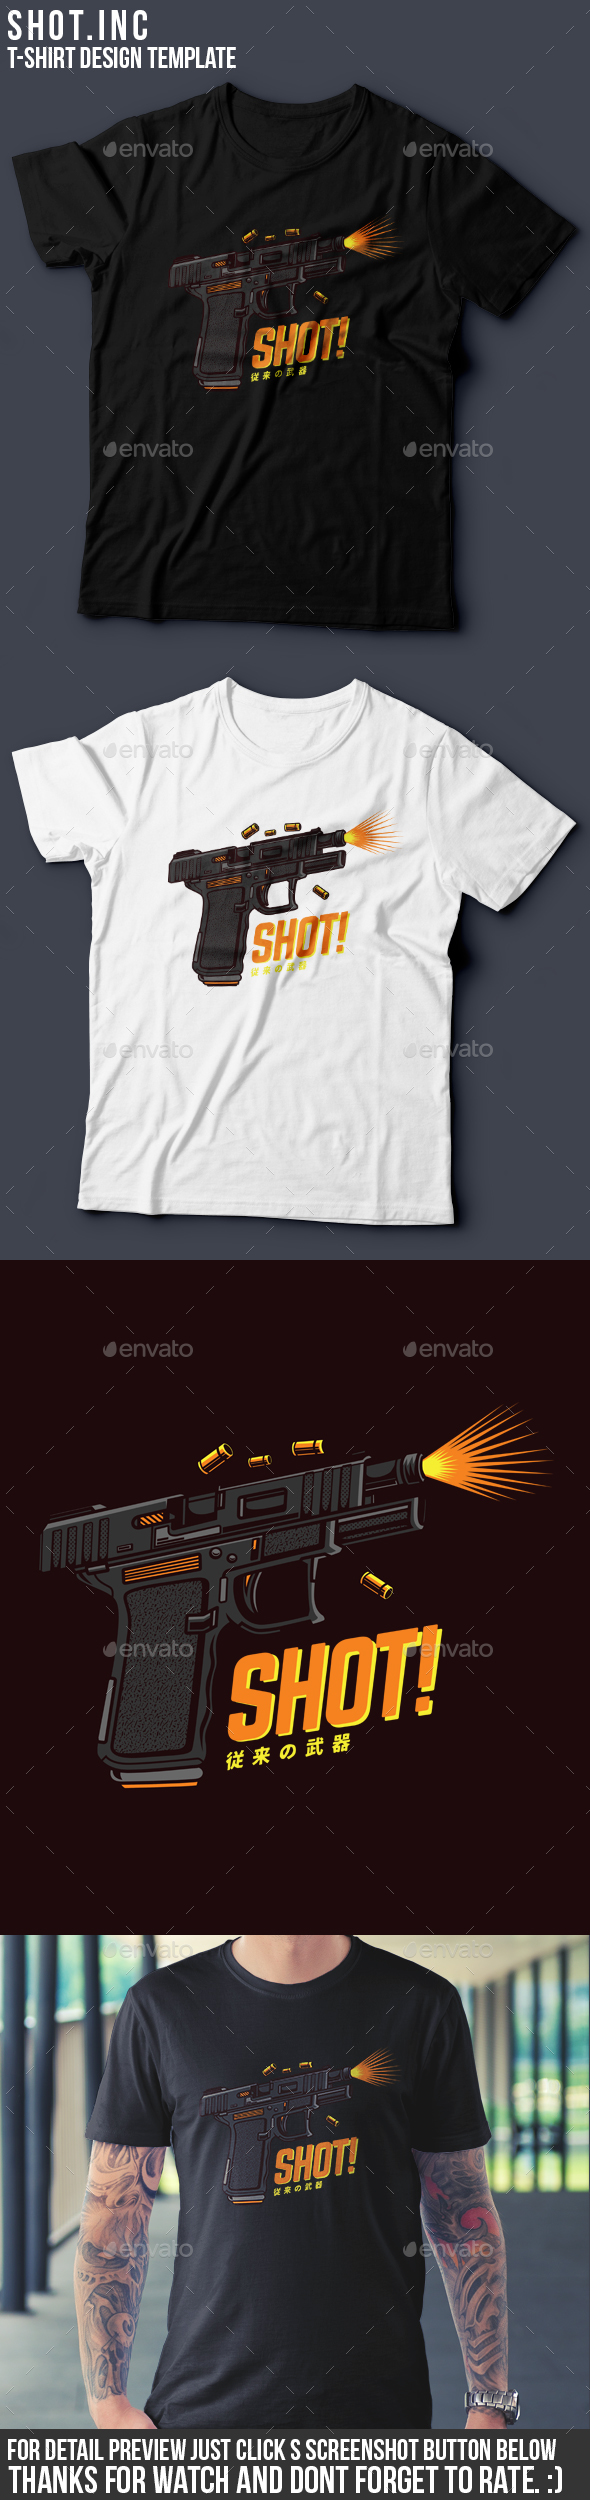 Shot! T-Shirt Design - Grunge Designs